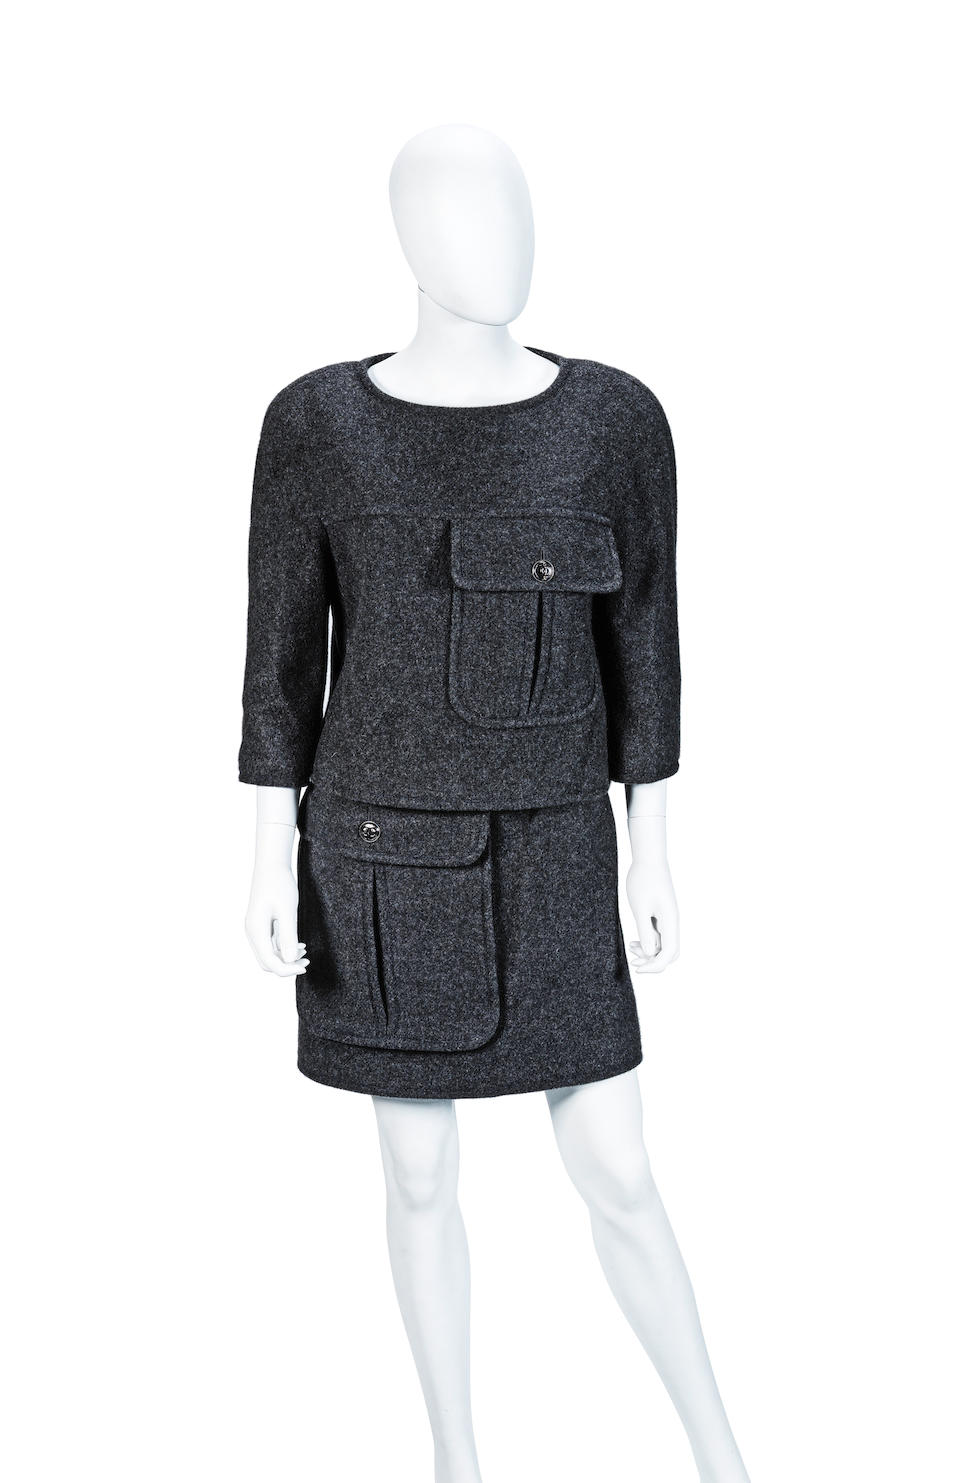 Charcoal Cashmere Ensemble, Chanel, 2010s,